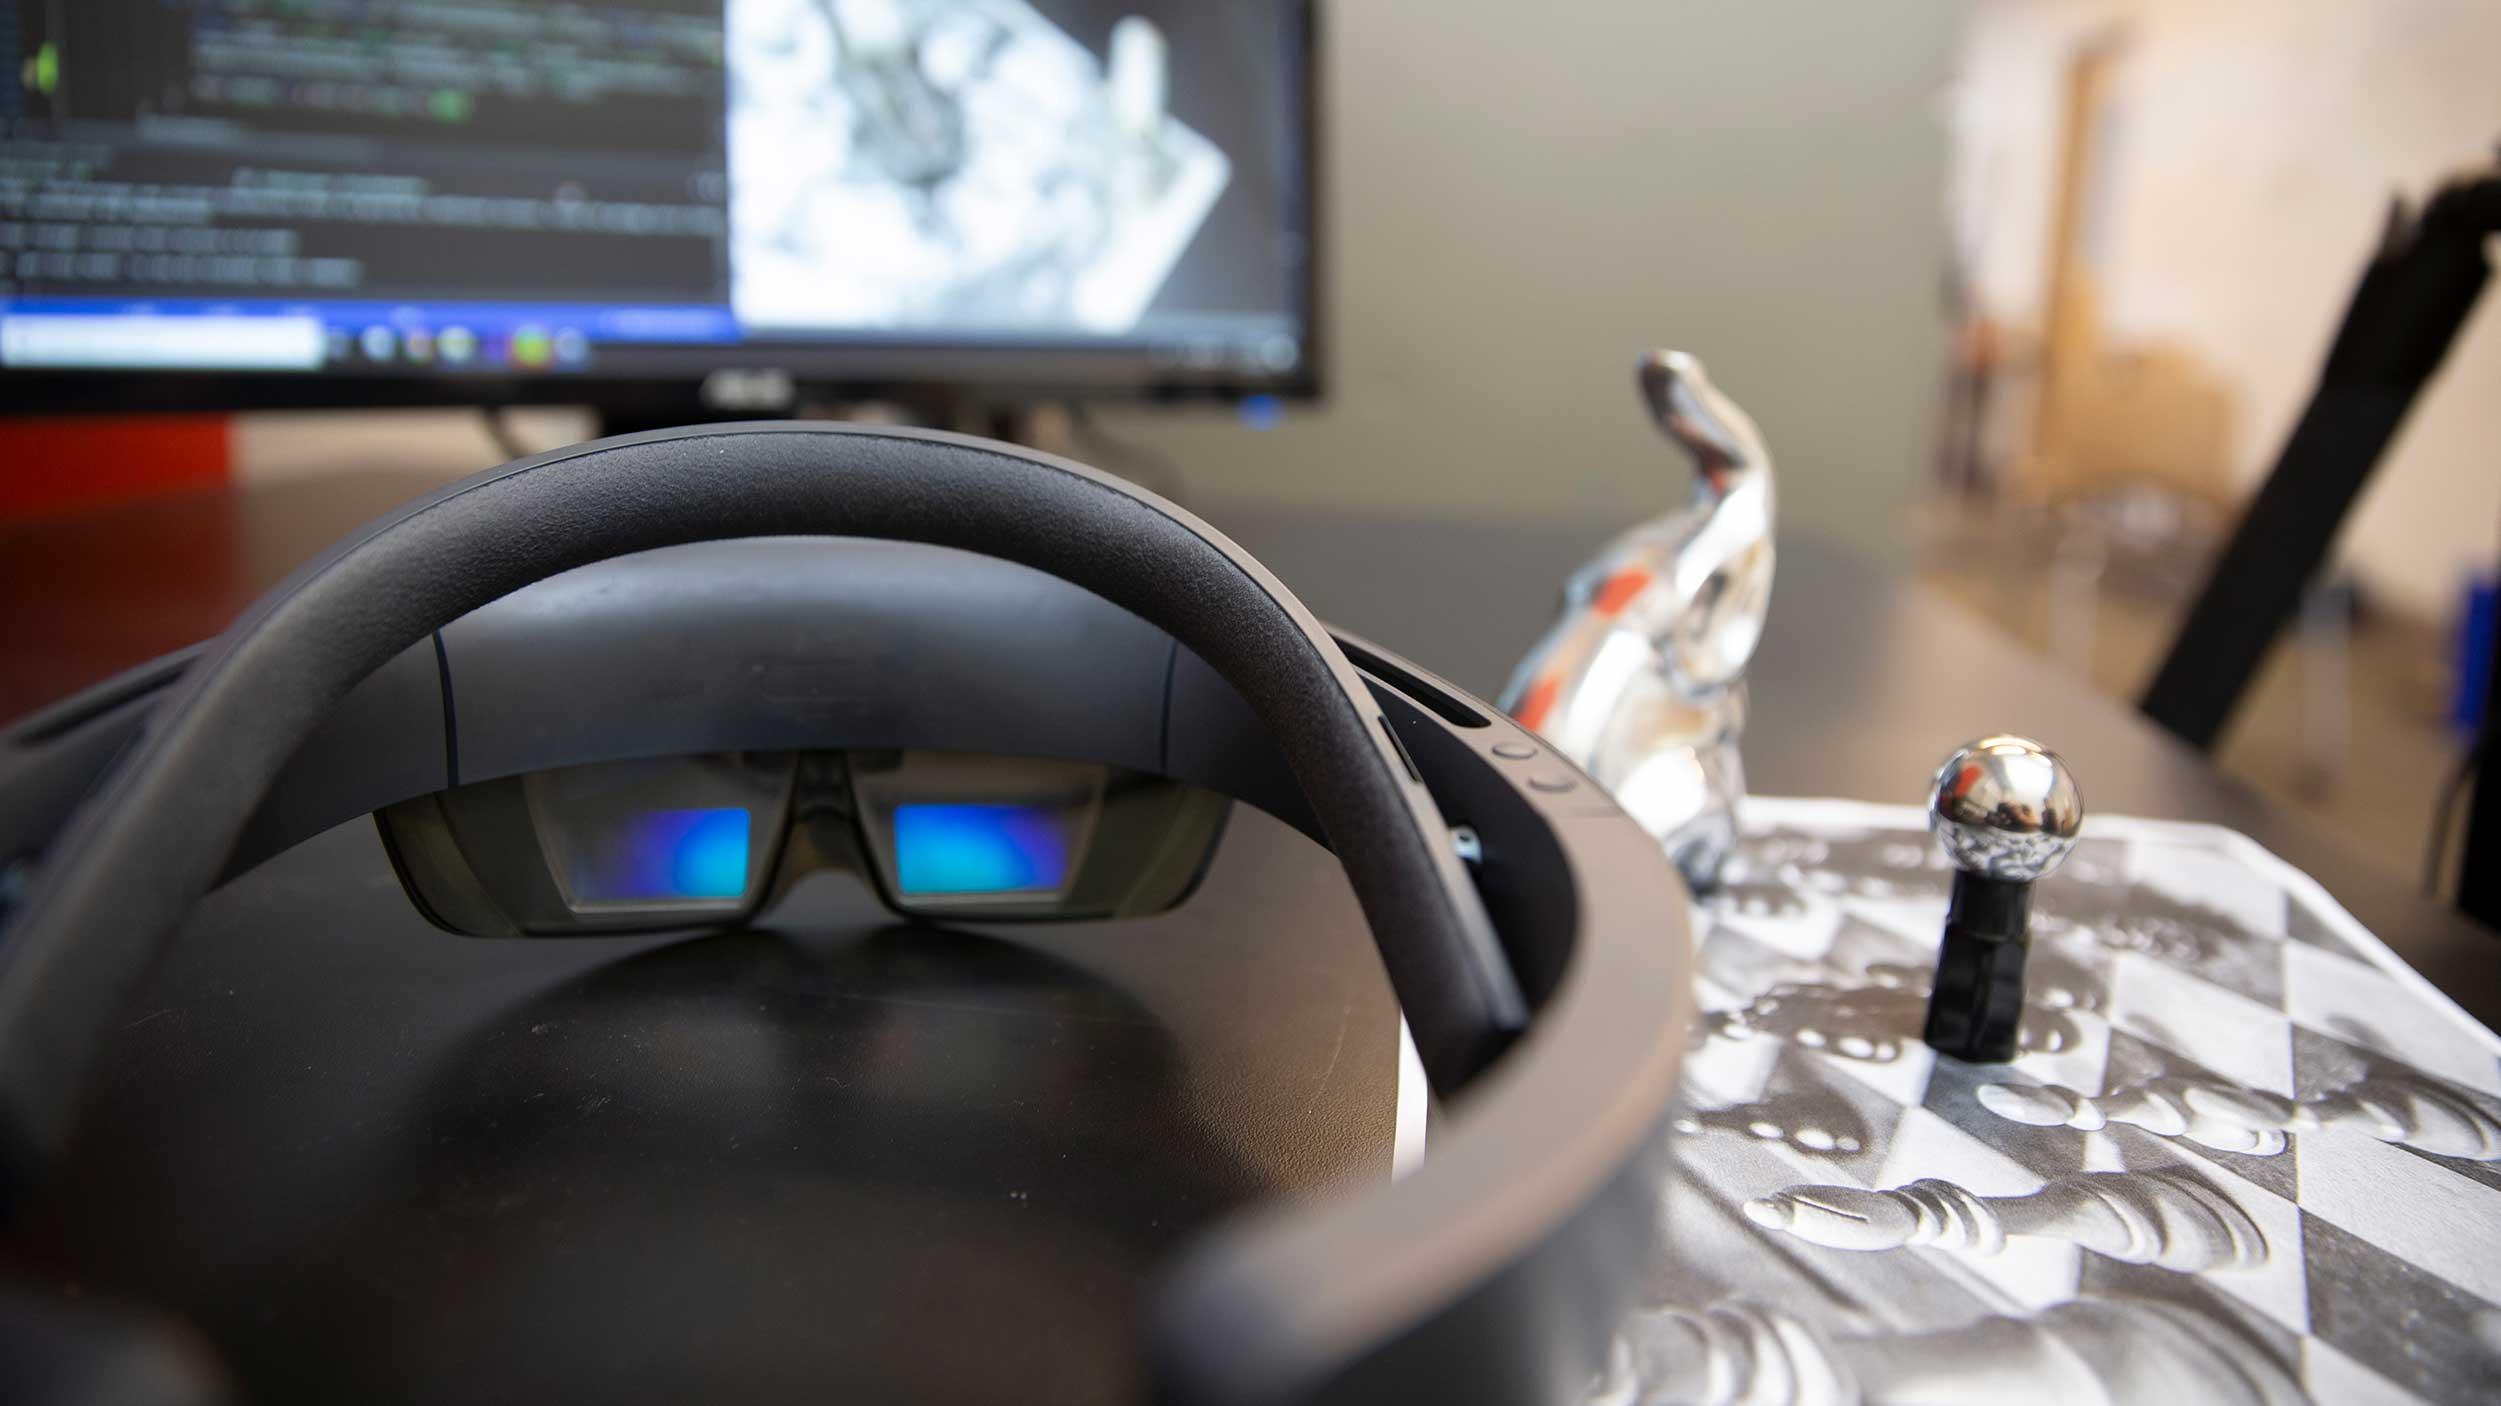 Image with VR goggles and other equipment used in Robert LiKimWa's research